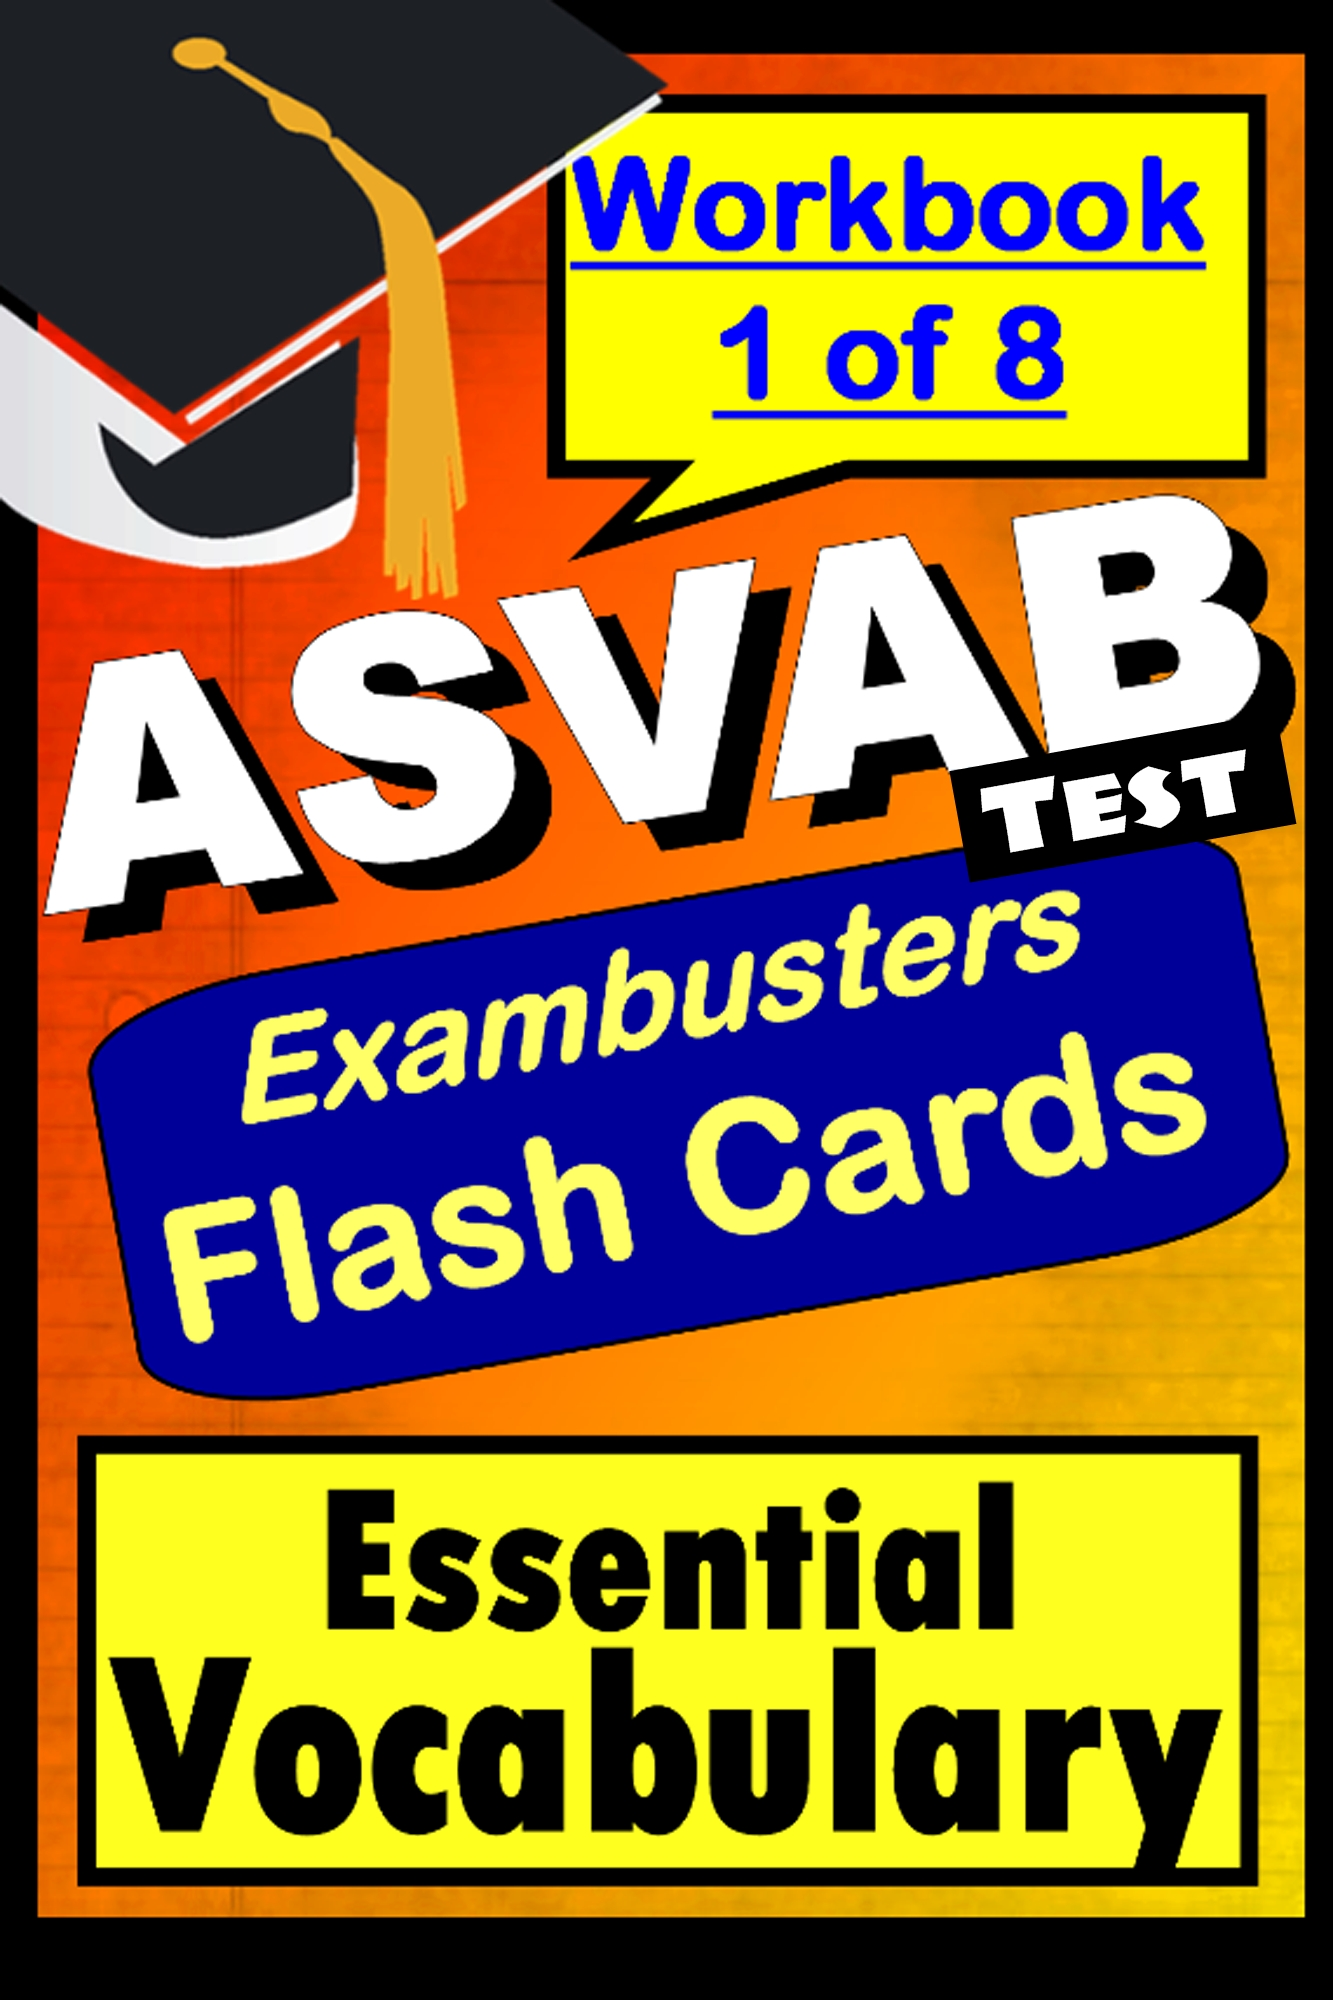 ASVAB Test Essential Vocabulary--Exambusters Flashcards--Workbook 1 of 8